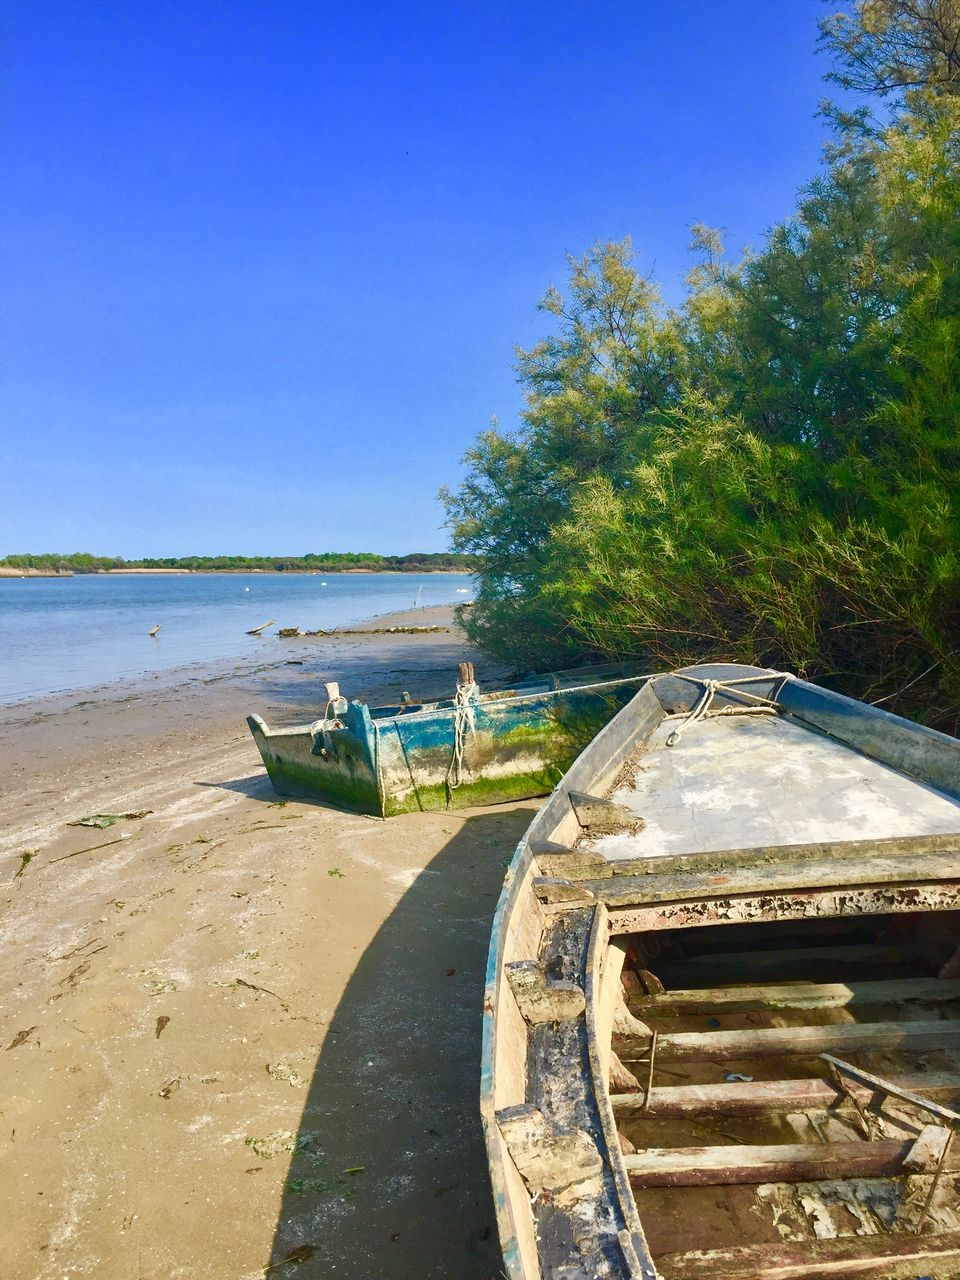 transportation, nautical vessel, water, mode of transport, nature, moored, day, boat, tranquility, tree, tranquil scene, no people, clear sky, beauty in nature, outdoors, scenics, beach, sea, sky, outrigger